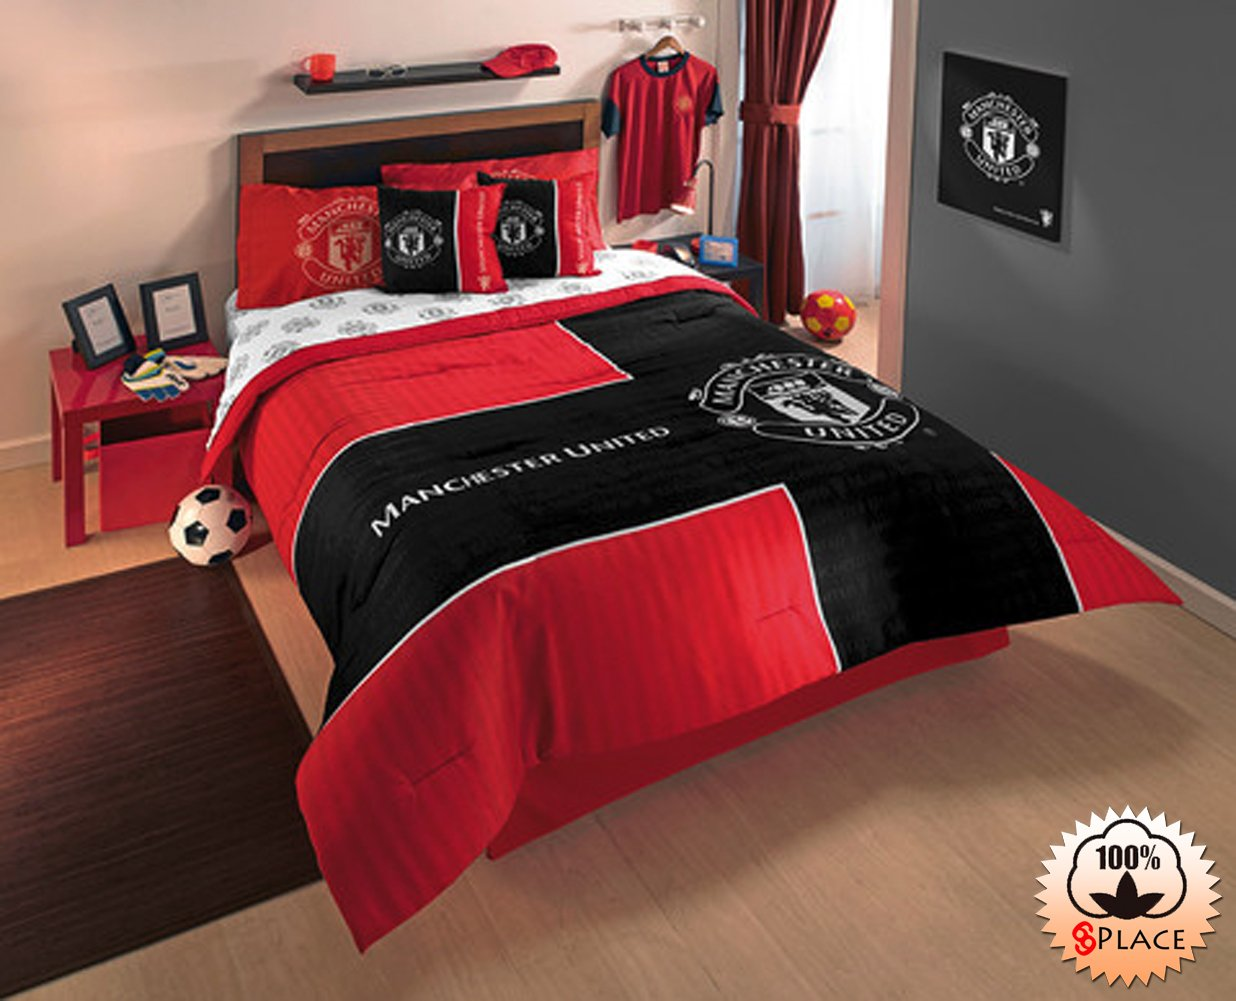 Manchester united bedroom ideas beautiful bedroom for Man u bedroom ideas